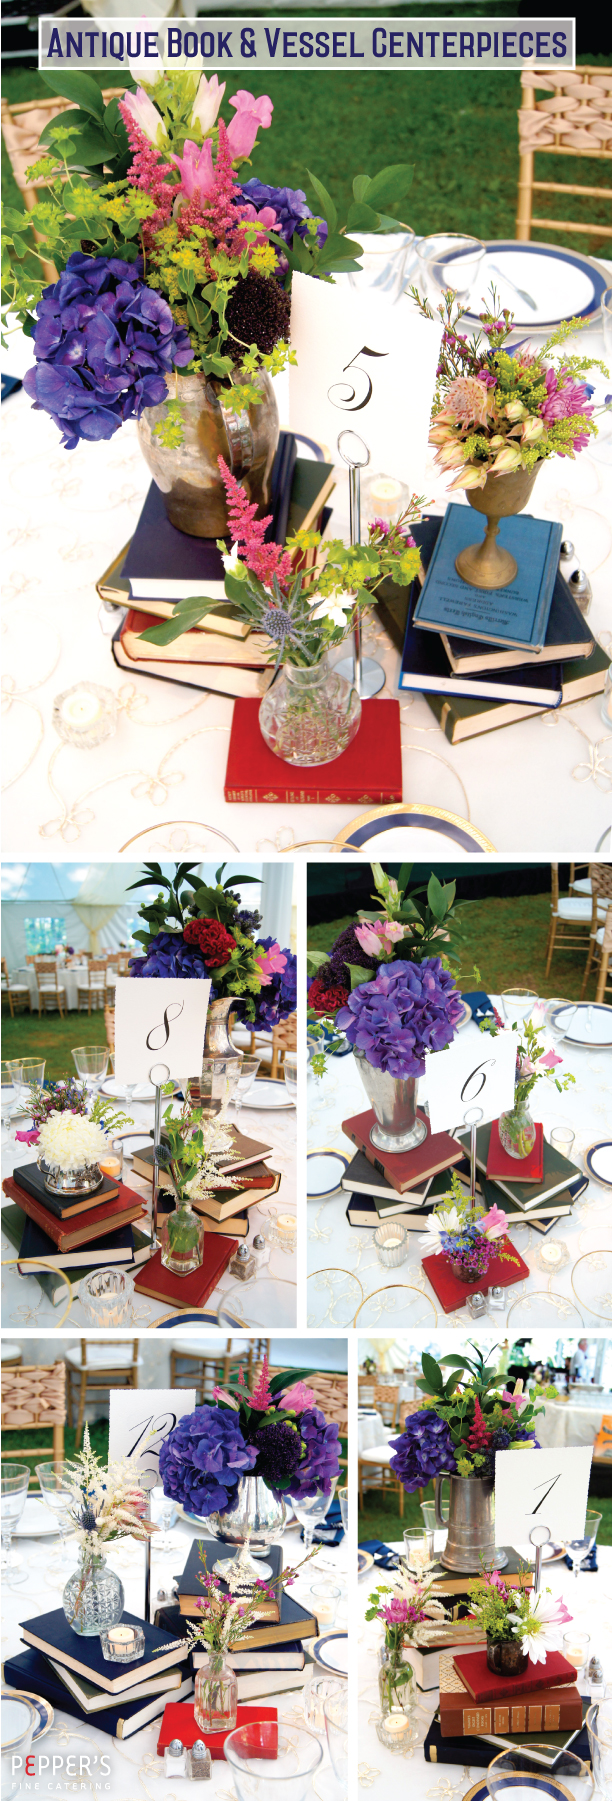 Antique Book and Vessel Centerpieces